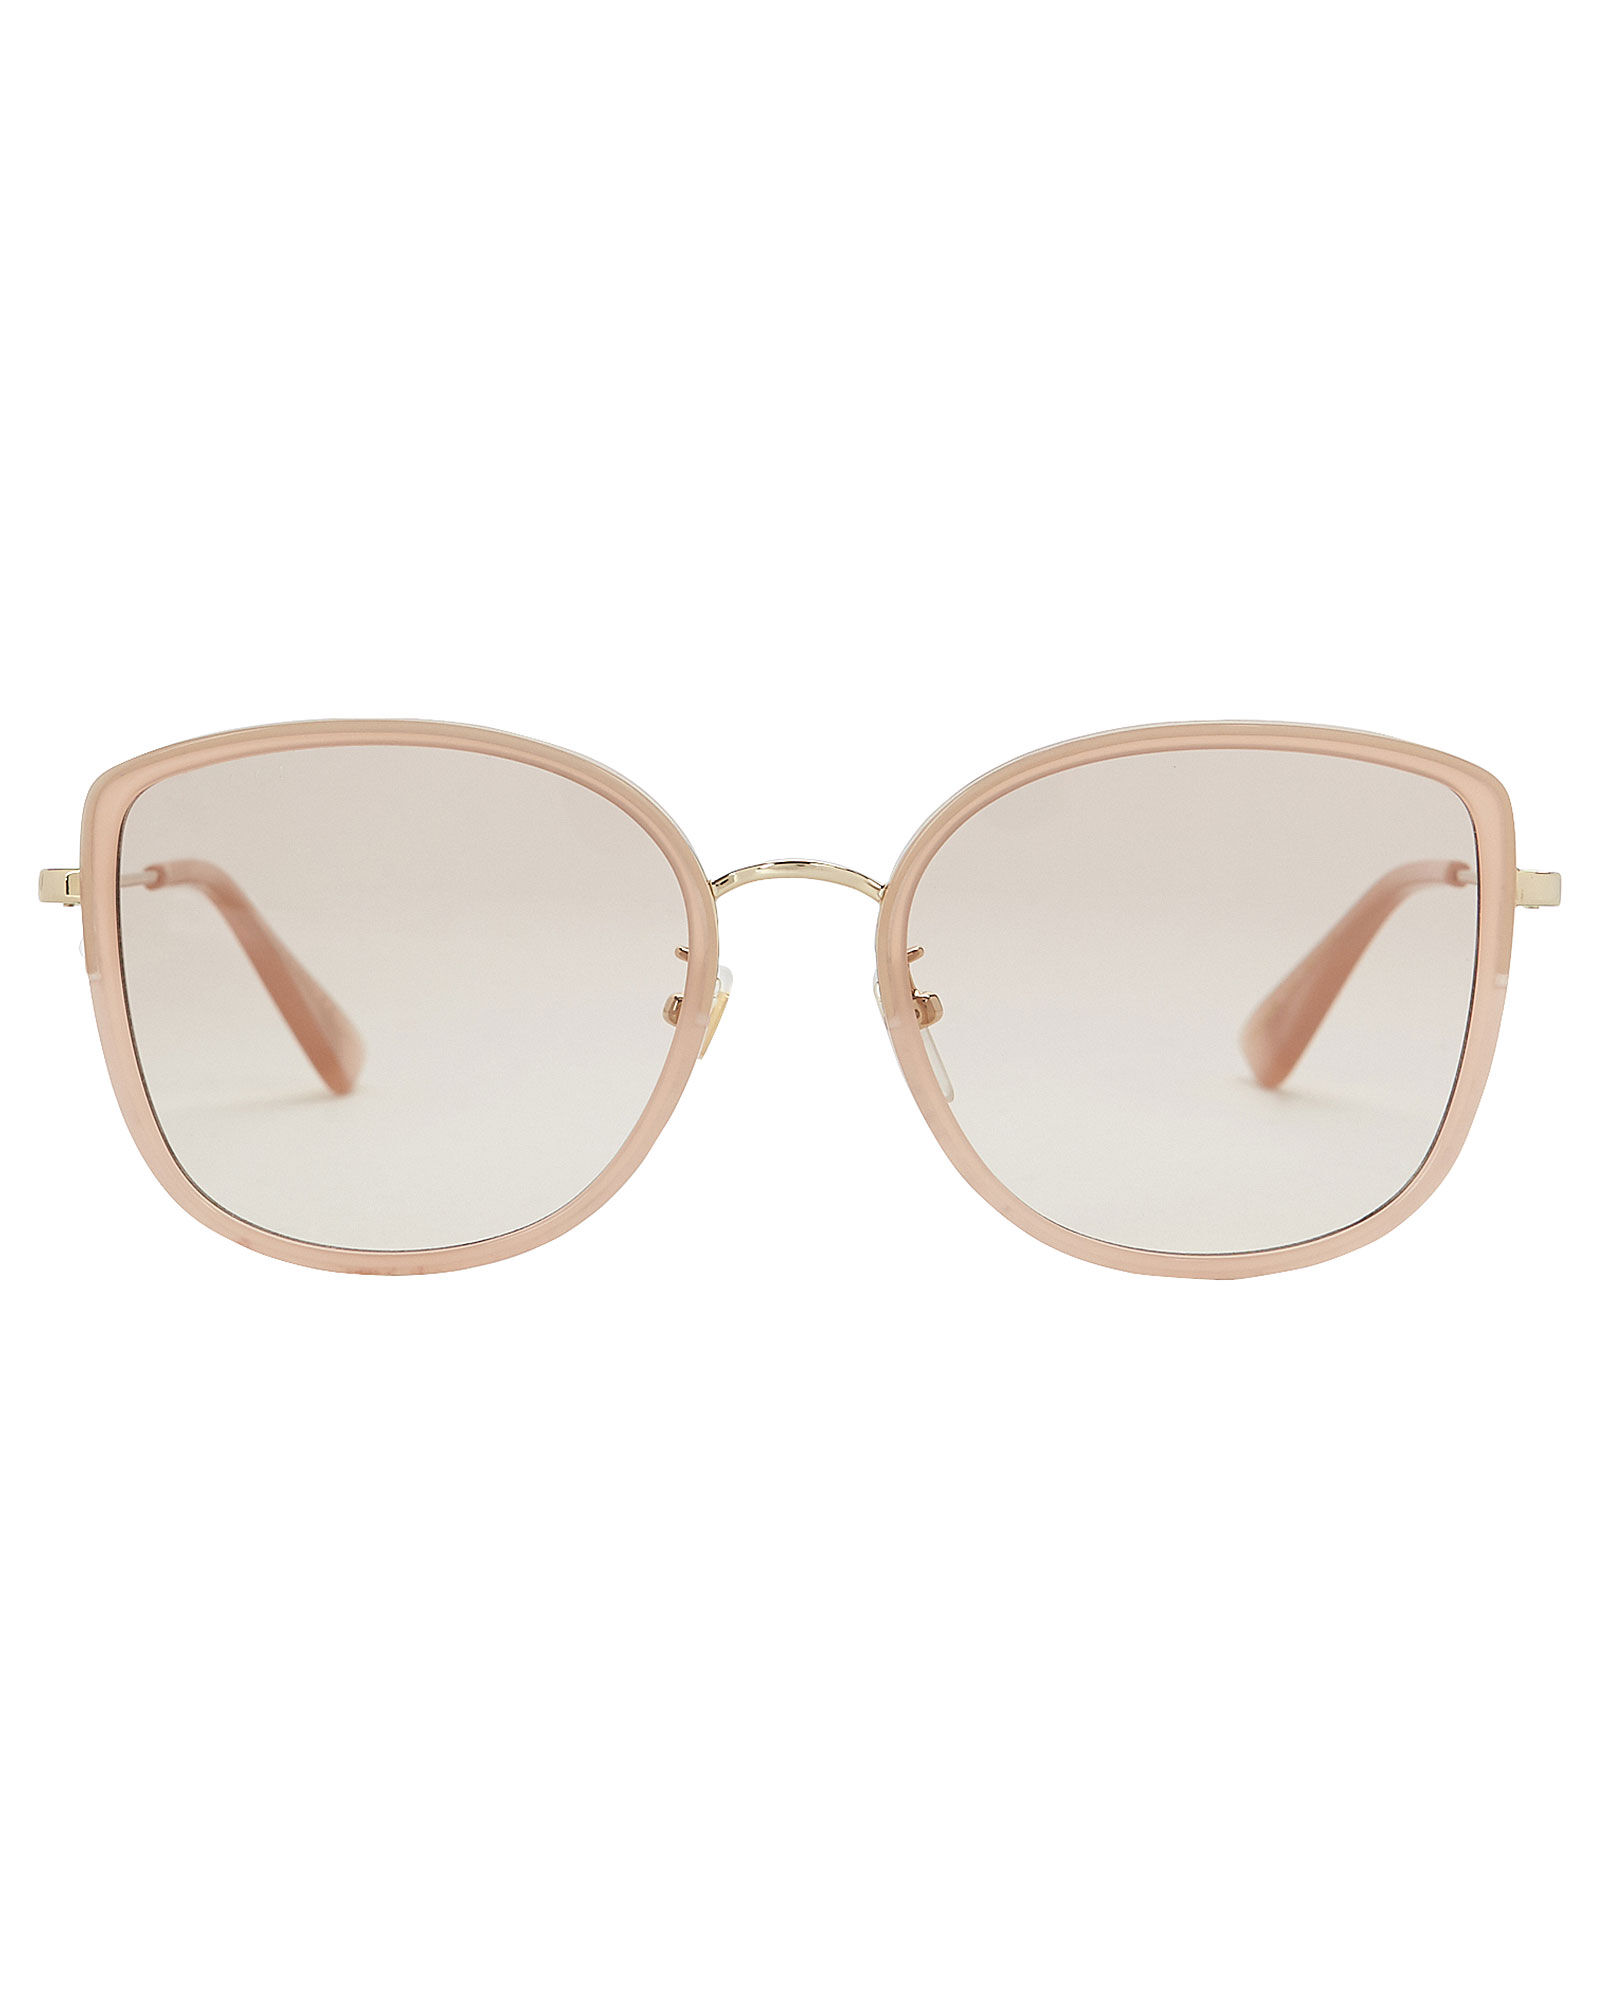 Havana Rounded Cat Eye Sunglasses, ROSE, hi-res